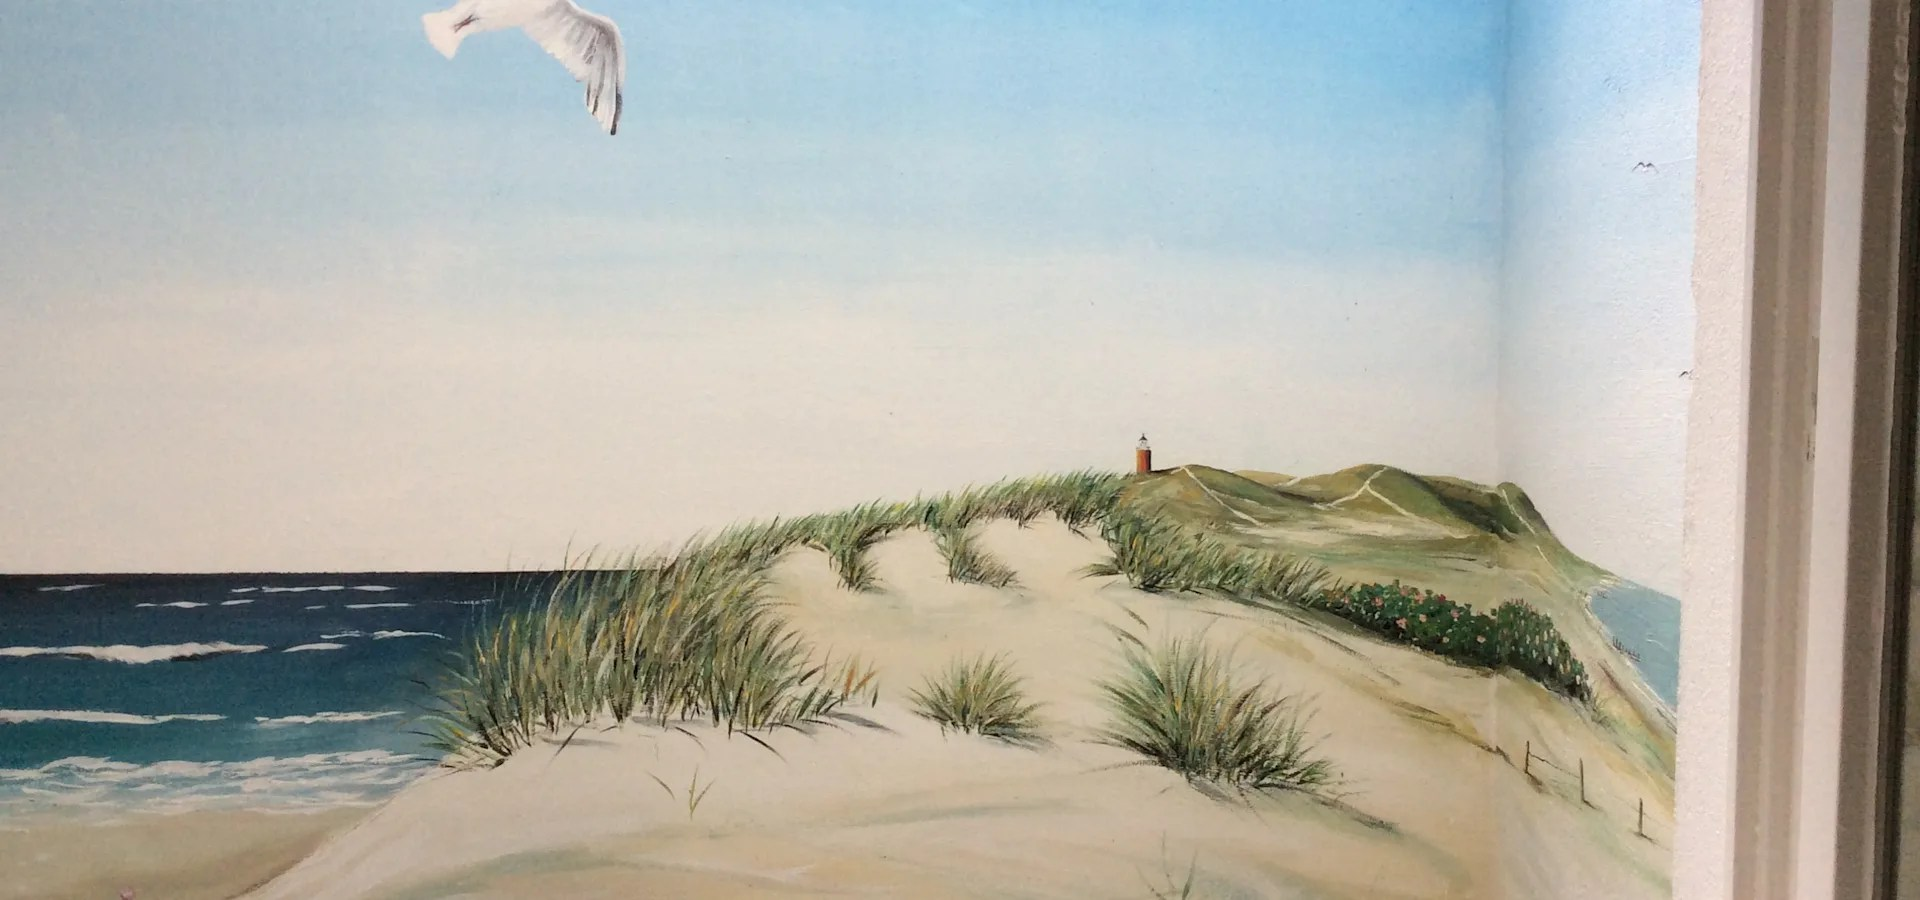 Wiegand Sylt Sylter Panoramablick Kampen Von Janine Wiegand Kunstmalerin Homify